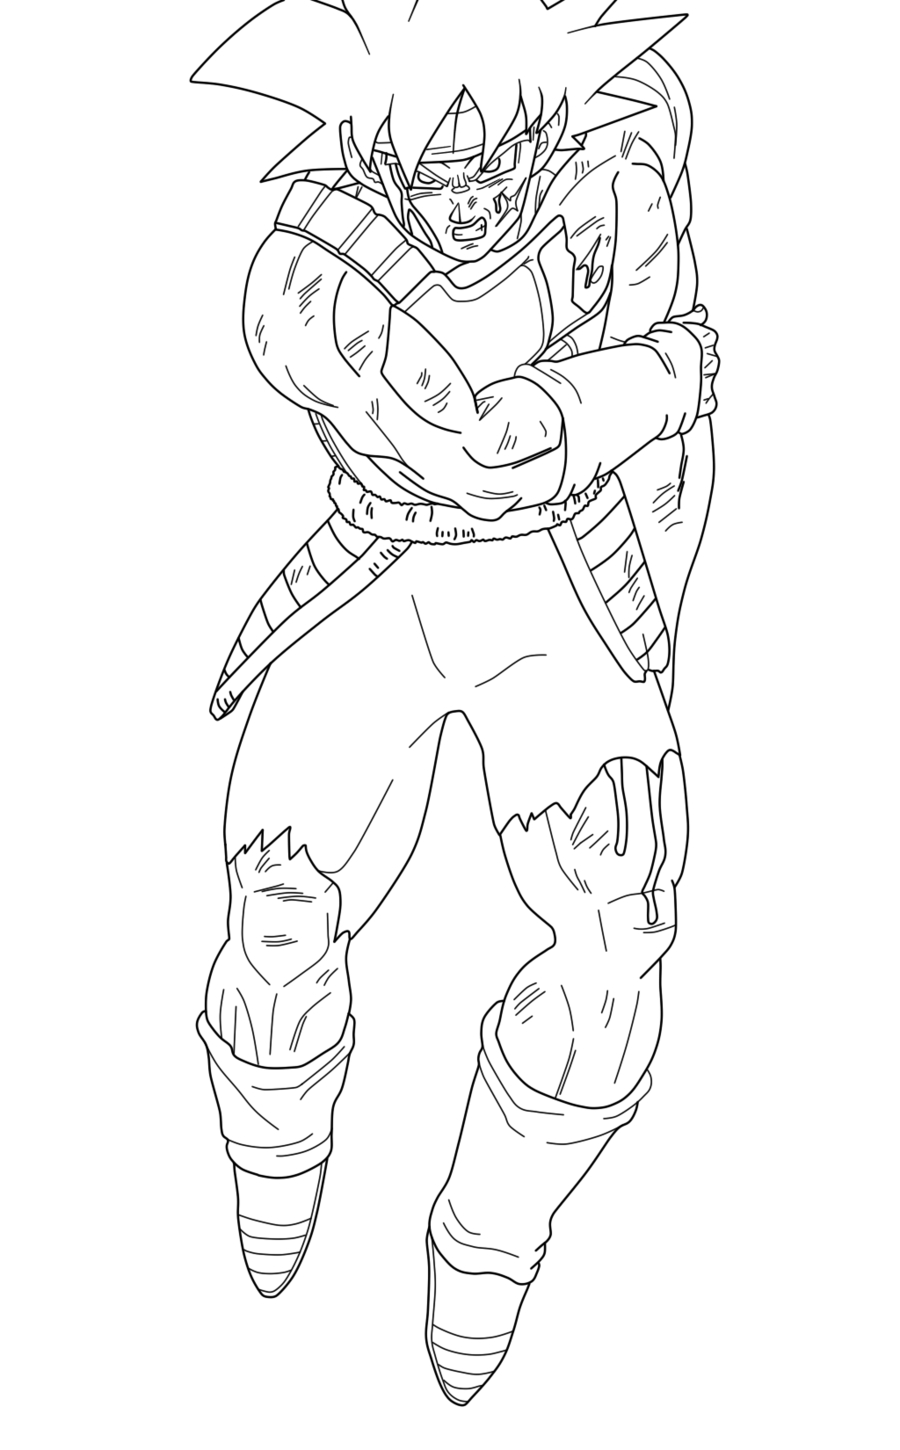 Coloriage bardock dragon ball imprimer et colorier - Dessin de dragon ball za imprimer ...